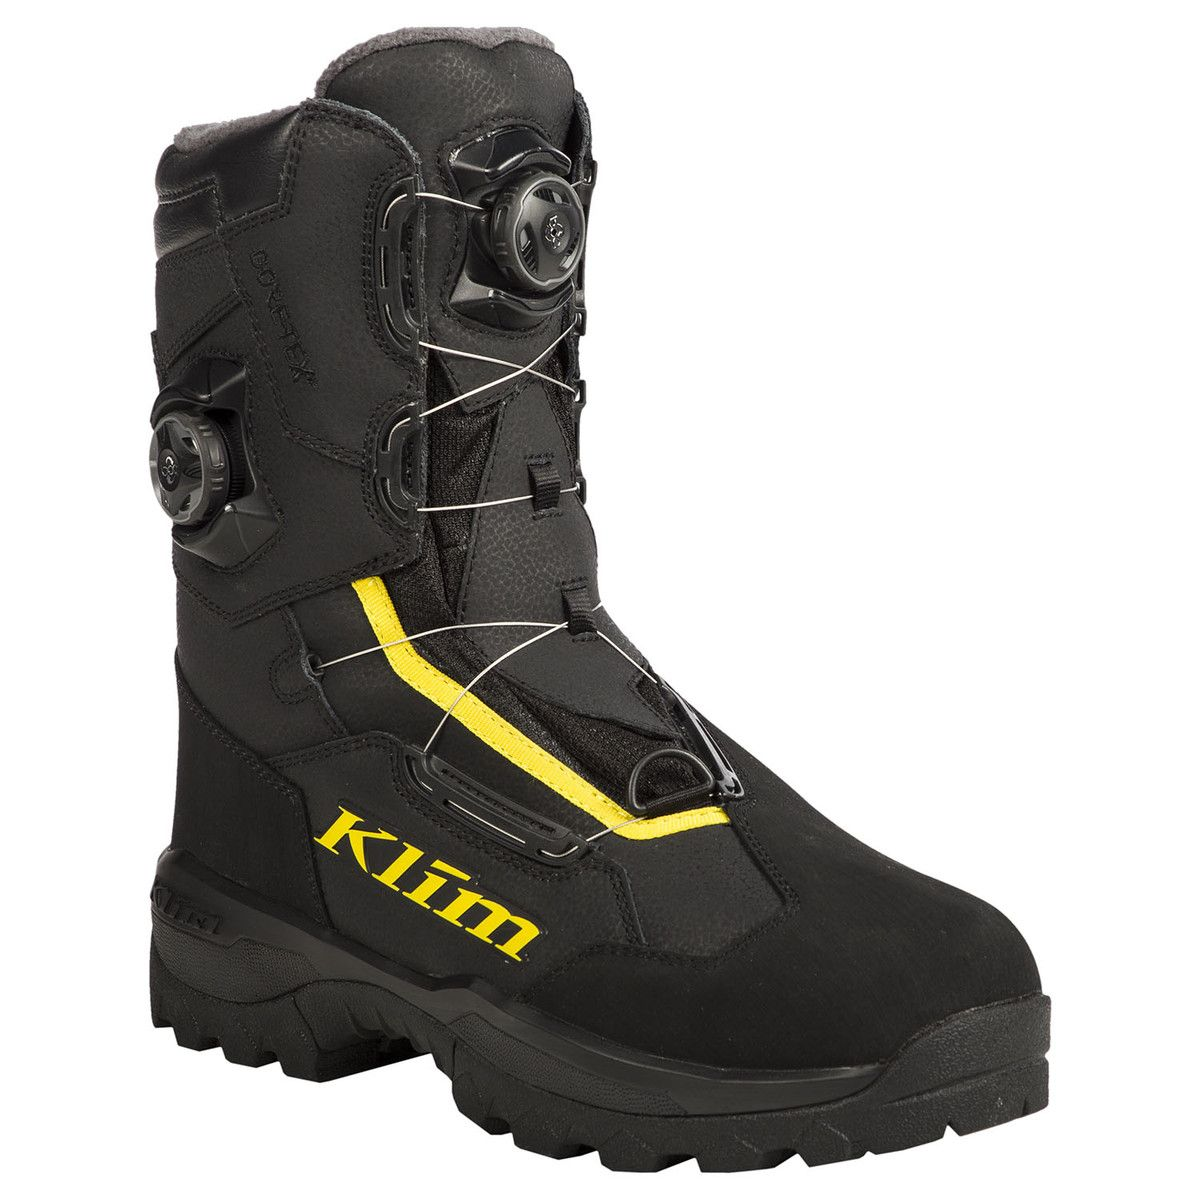 Photo of Adrenaline Pro GTX BOA Boot